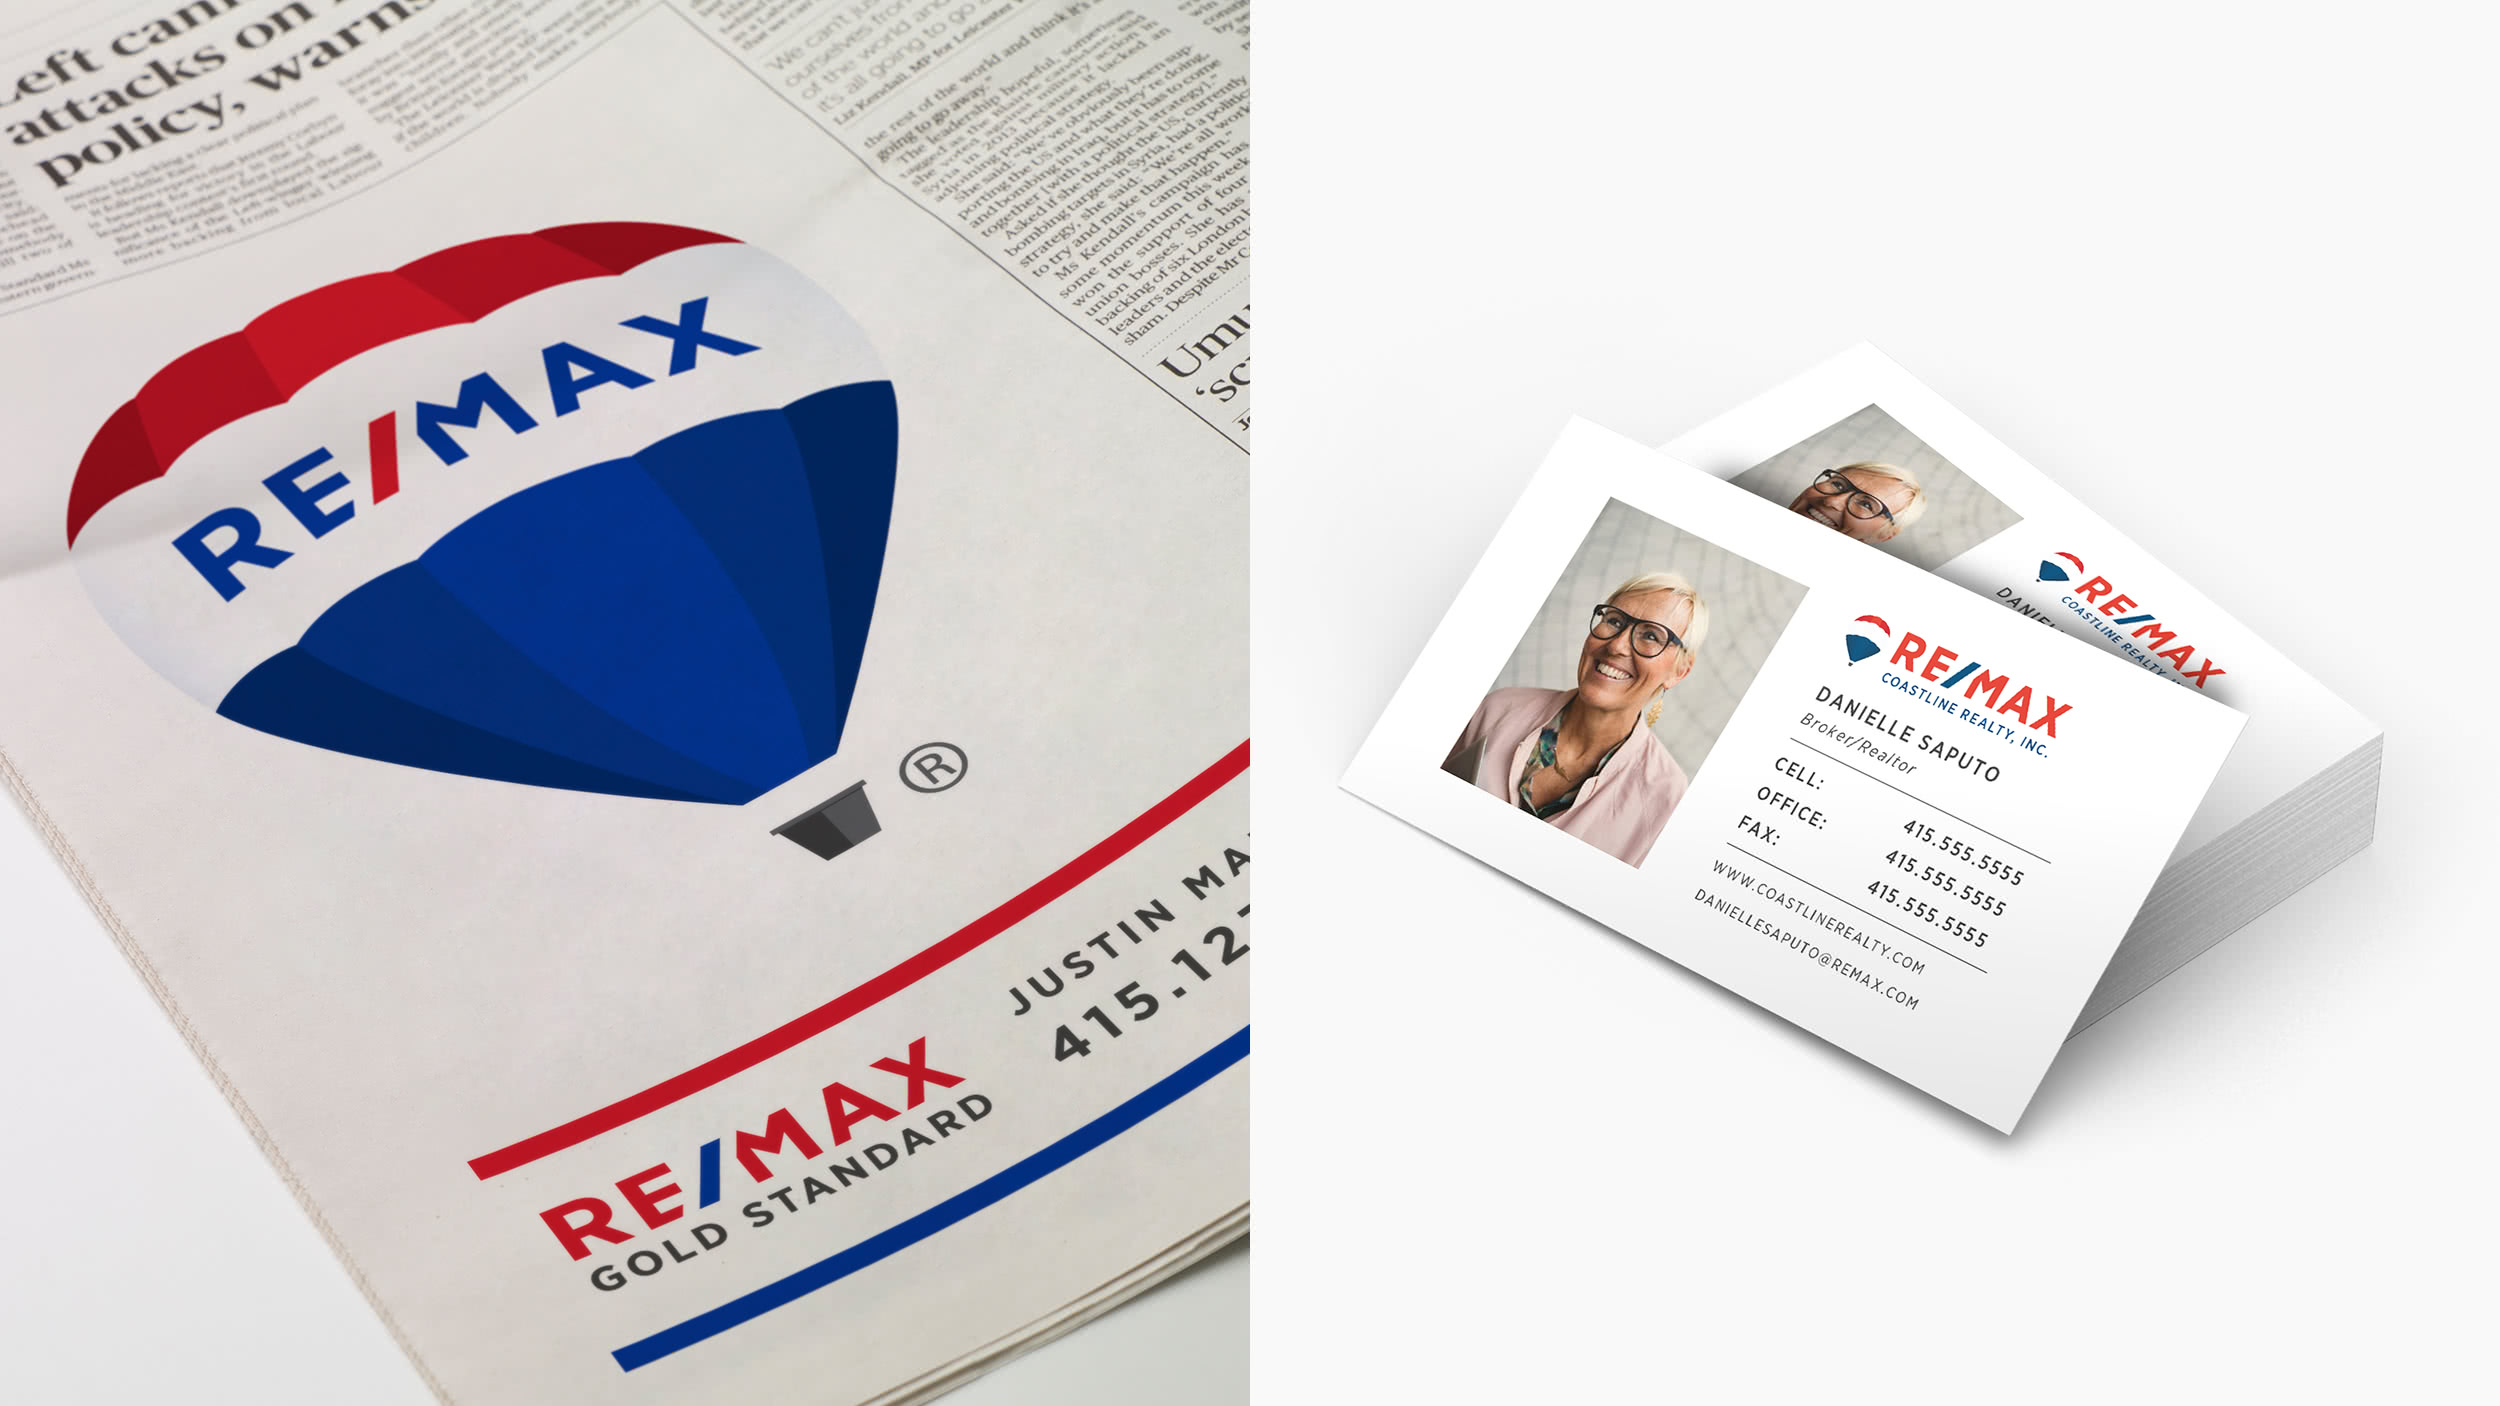 A RE/MAX Newspaper ad and a stack of RE/MAX business cards